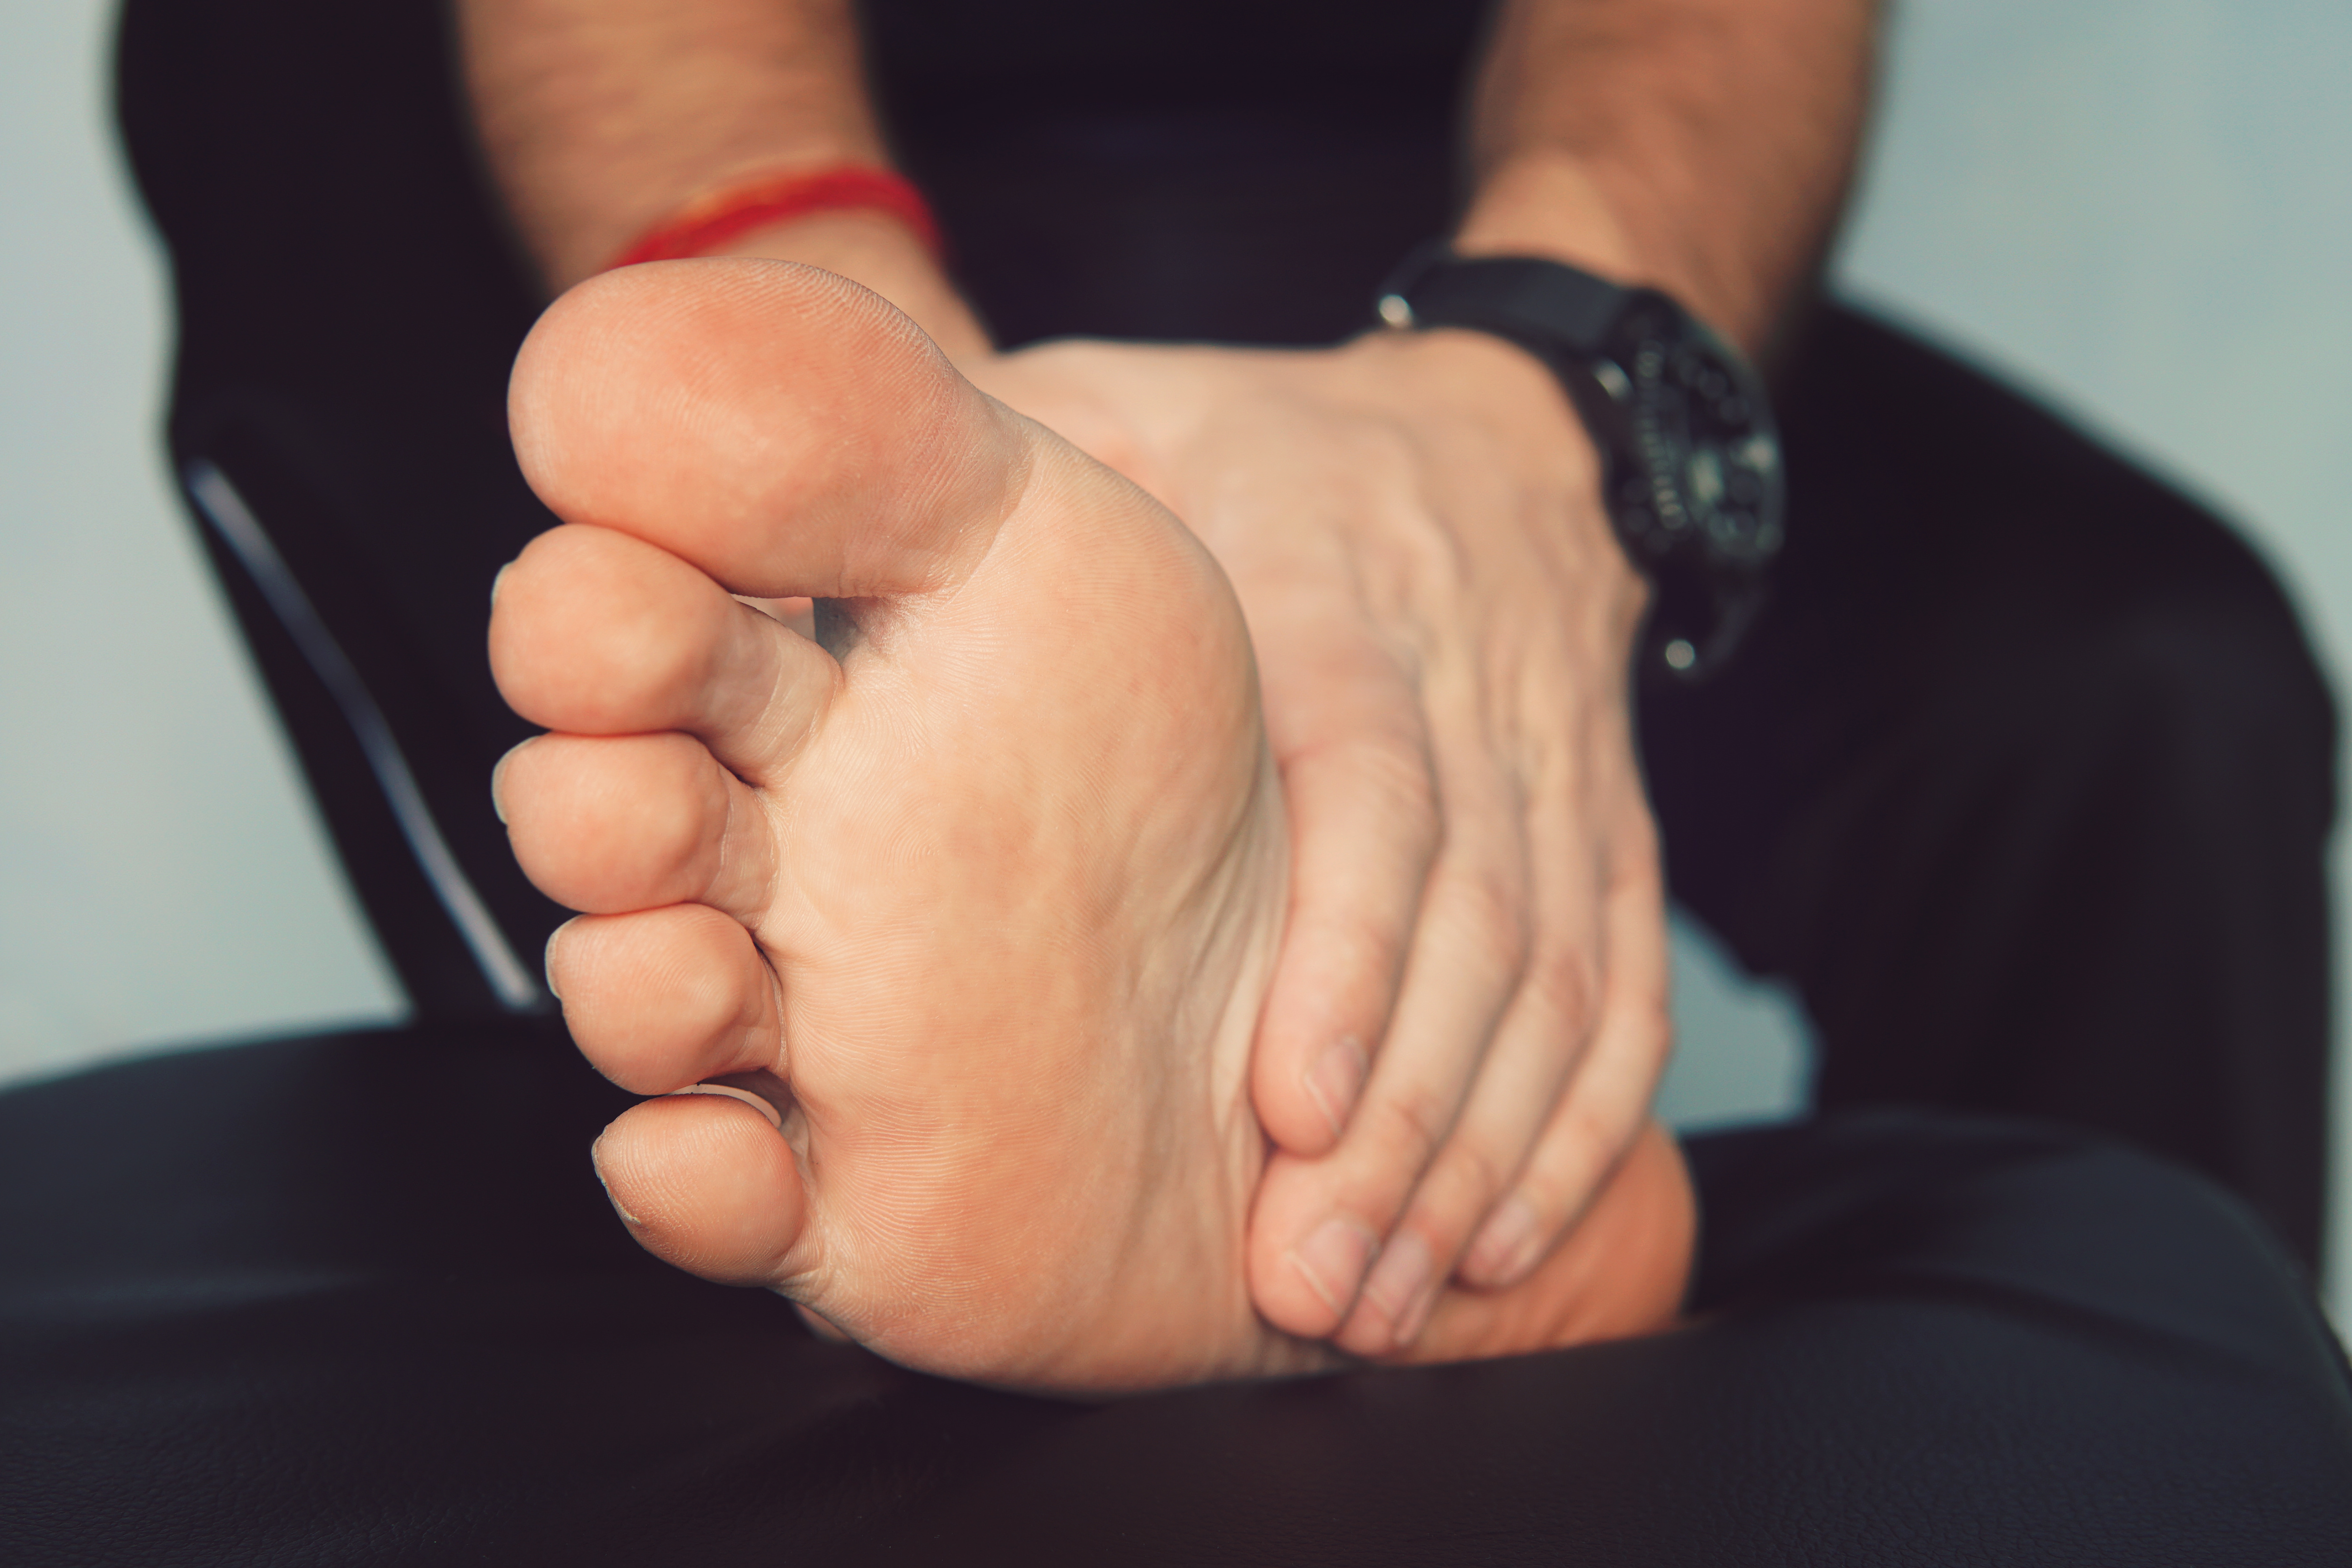 Man's hand massaging a foot. Man with painful and inflamed gout on his foot around the big toe area.